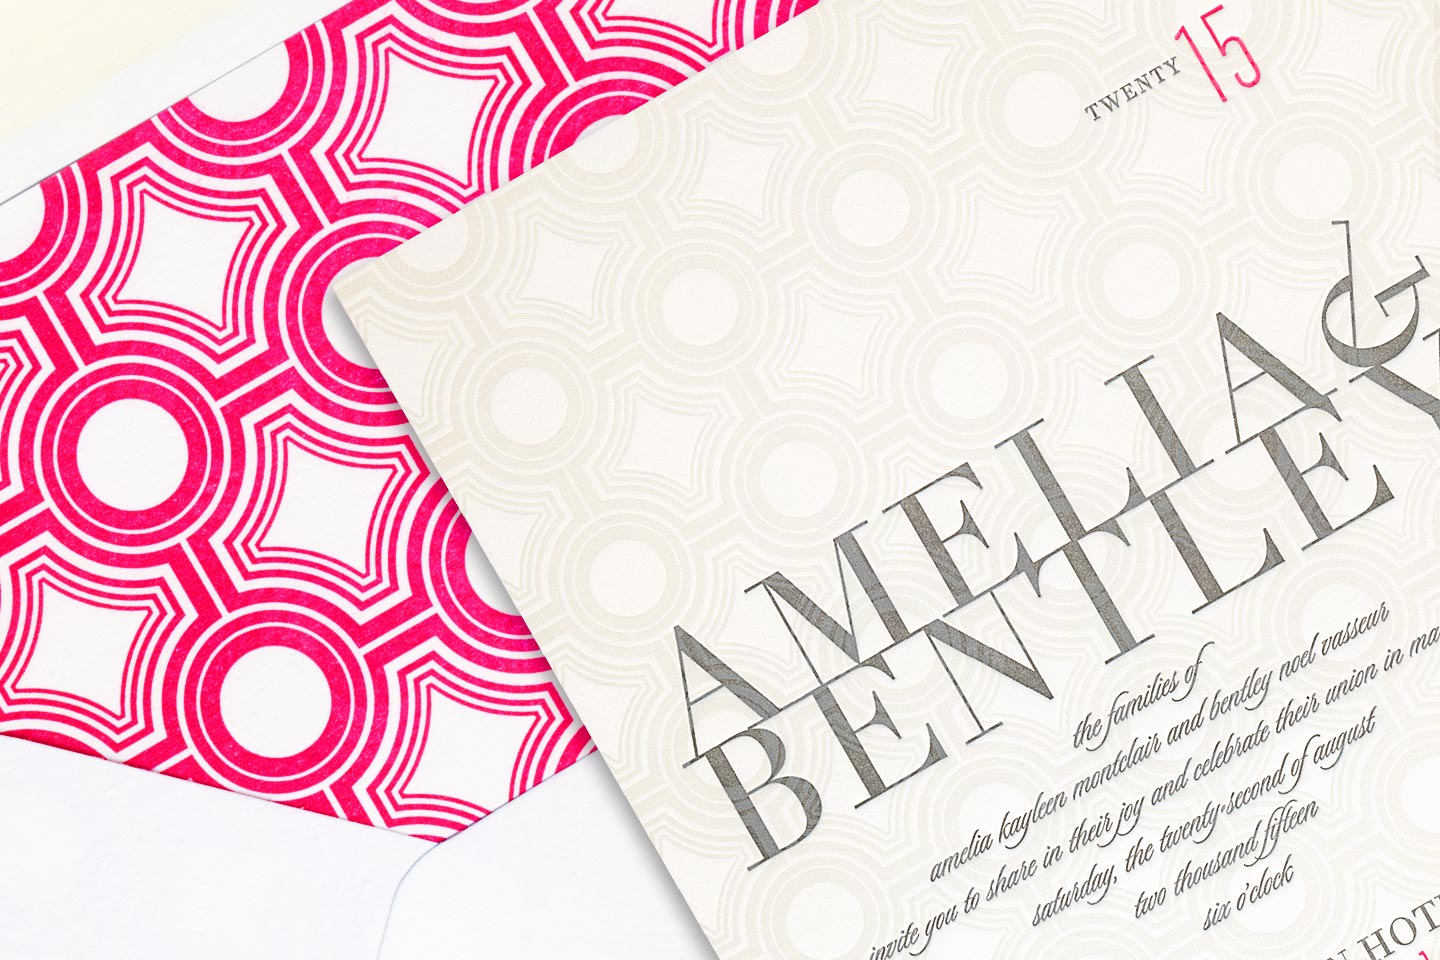 a beautiful sample wedding invitation for amelia and bentley, overlayed on top of its envelope featuring a beautiful hot pink liner, captured by 4d, inc